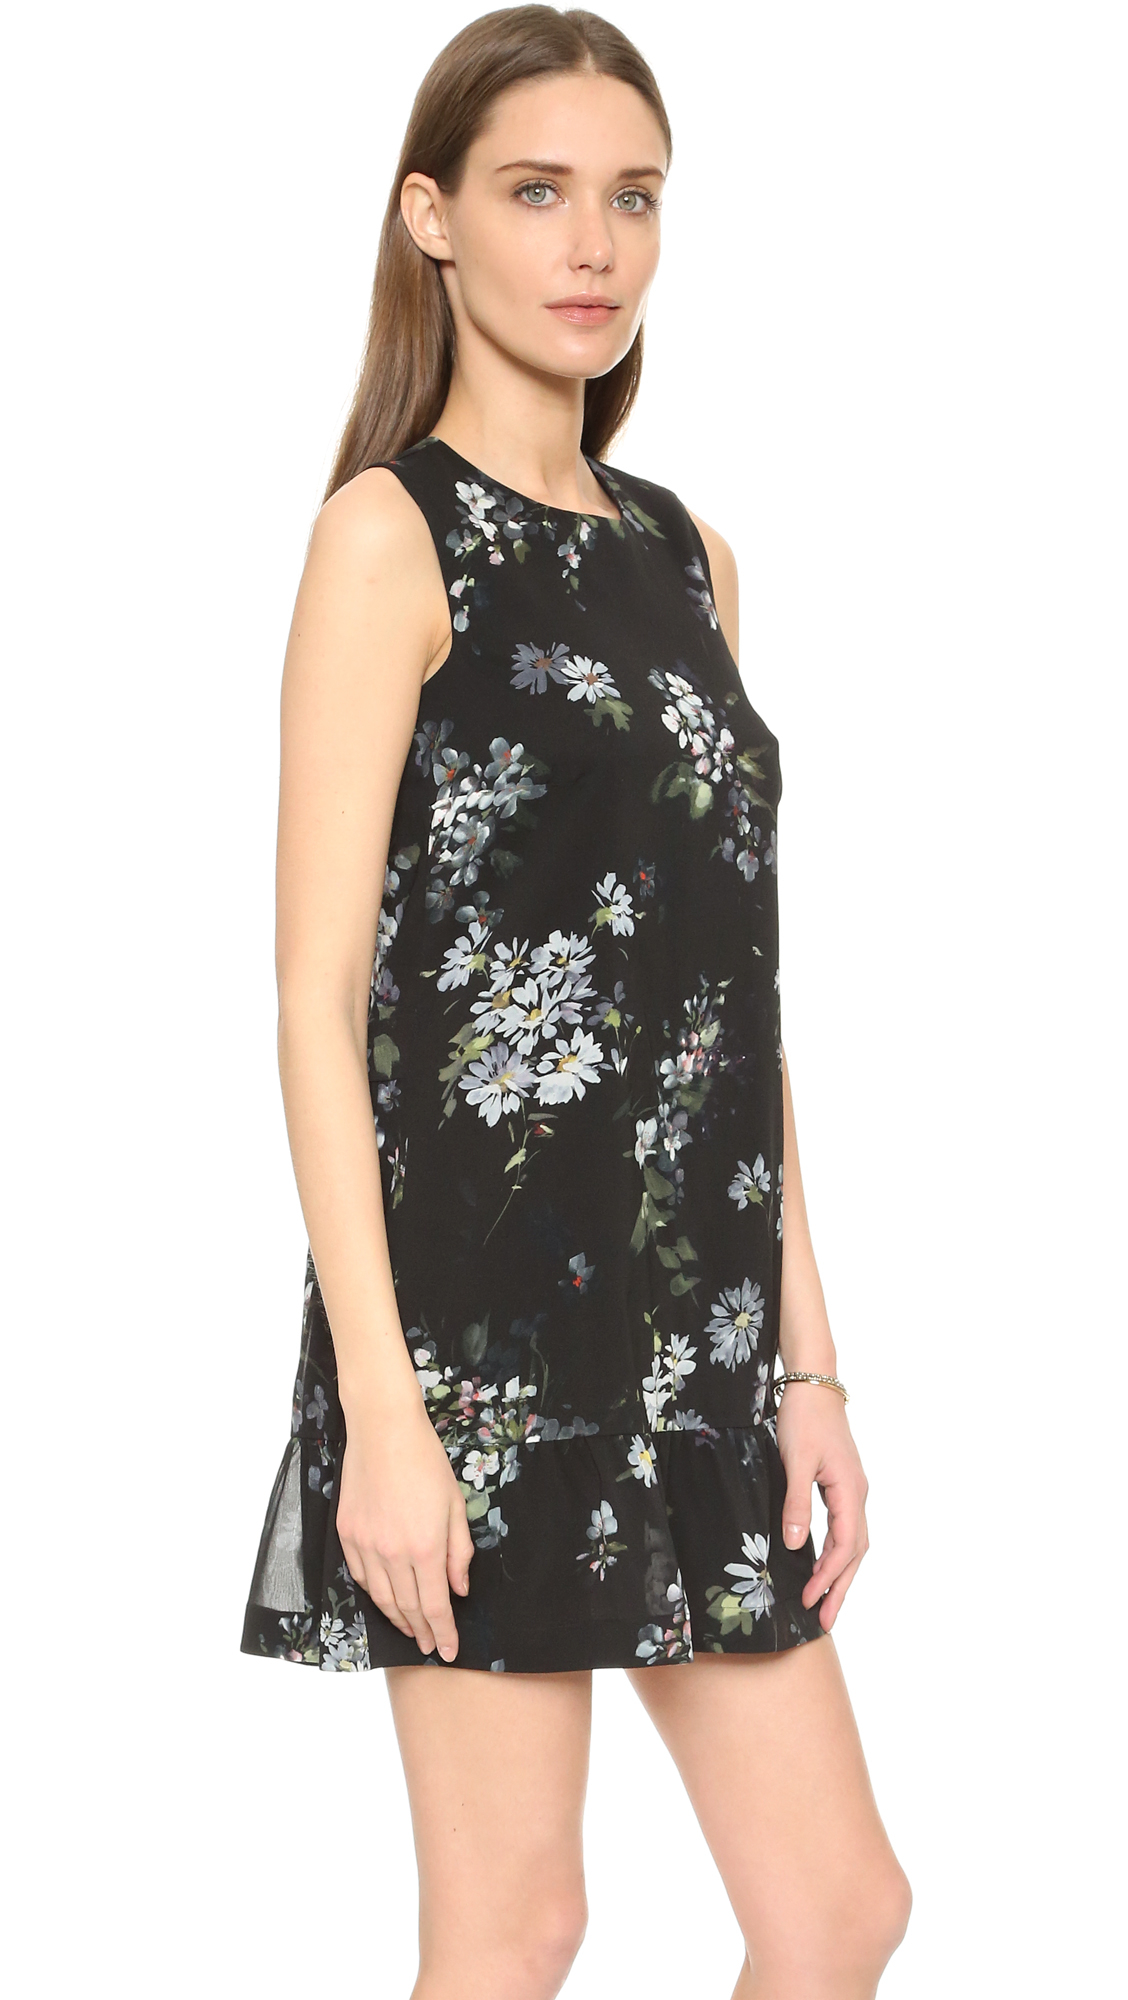 Red Valentino Spring 2016: Red Valentino Open Back Dress With Ruffled Hem In Black